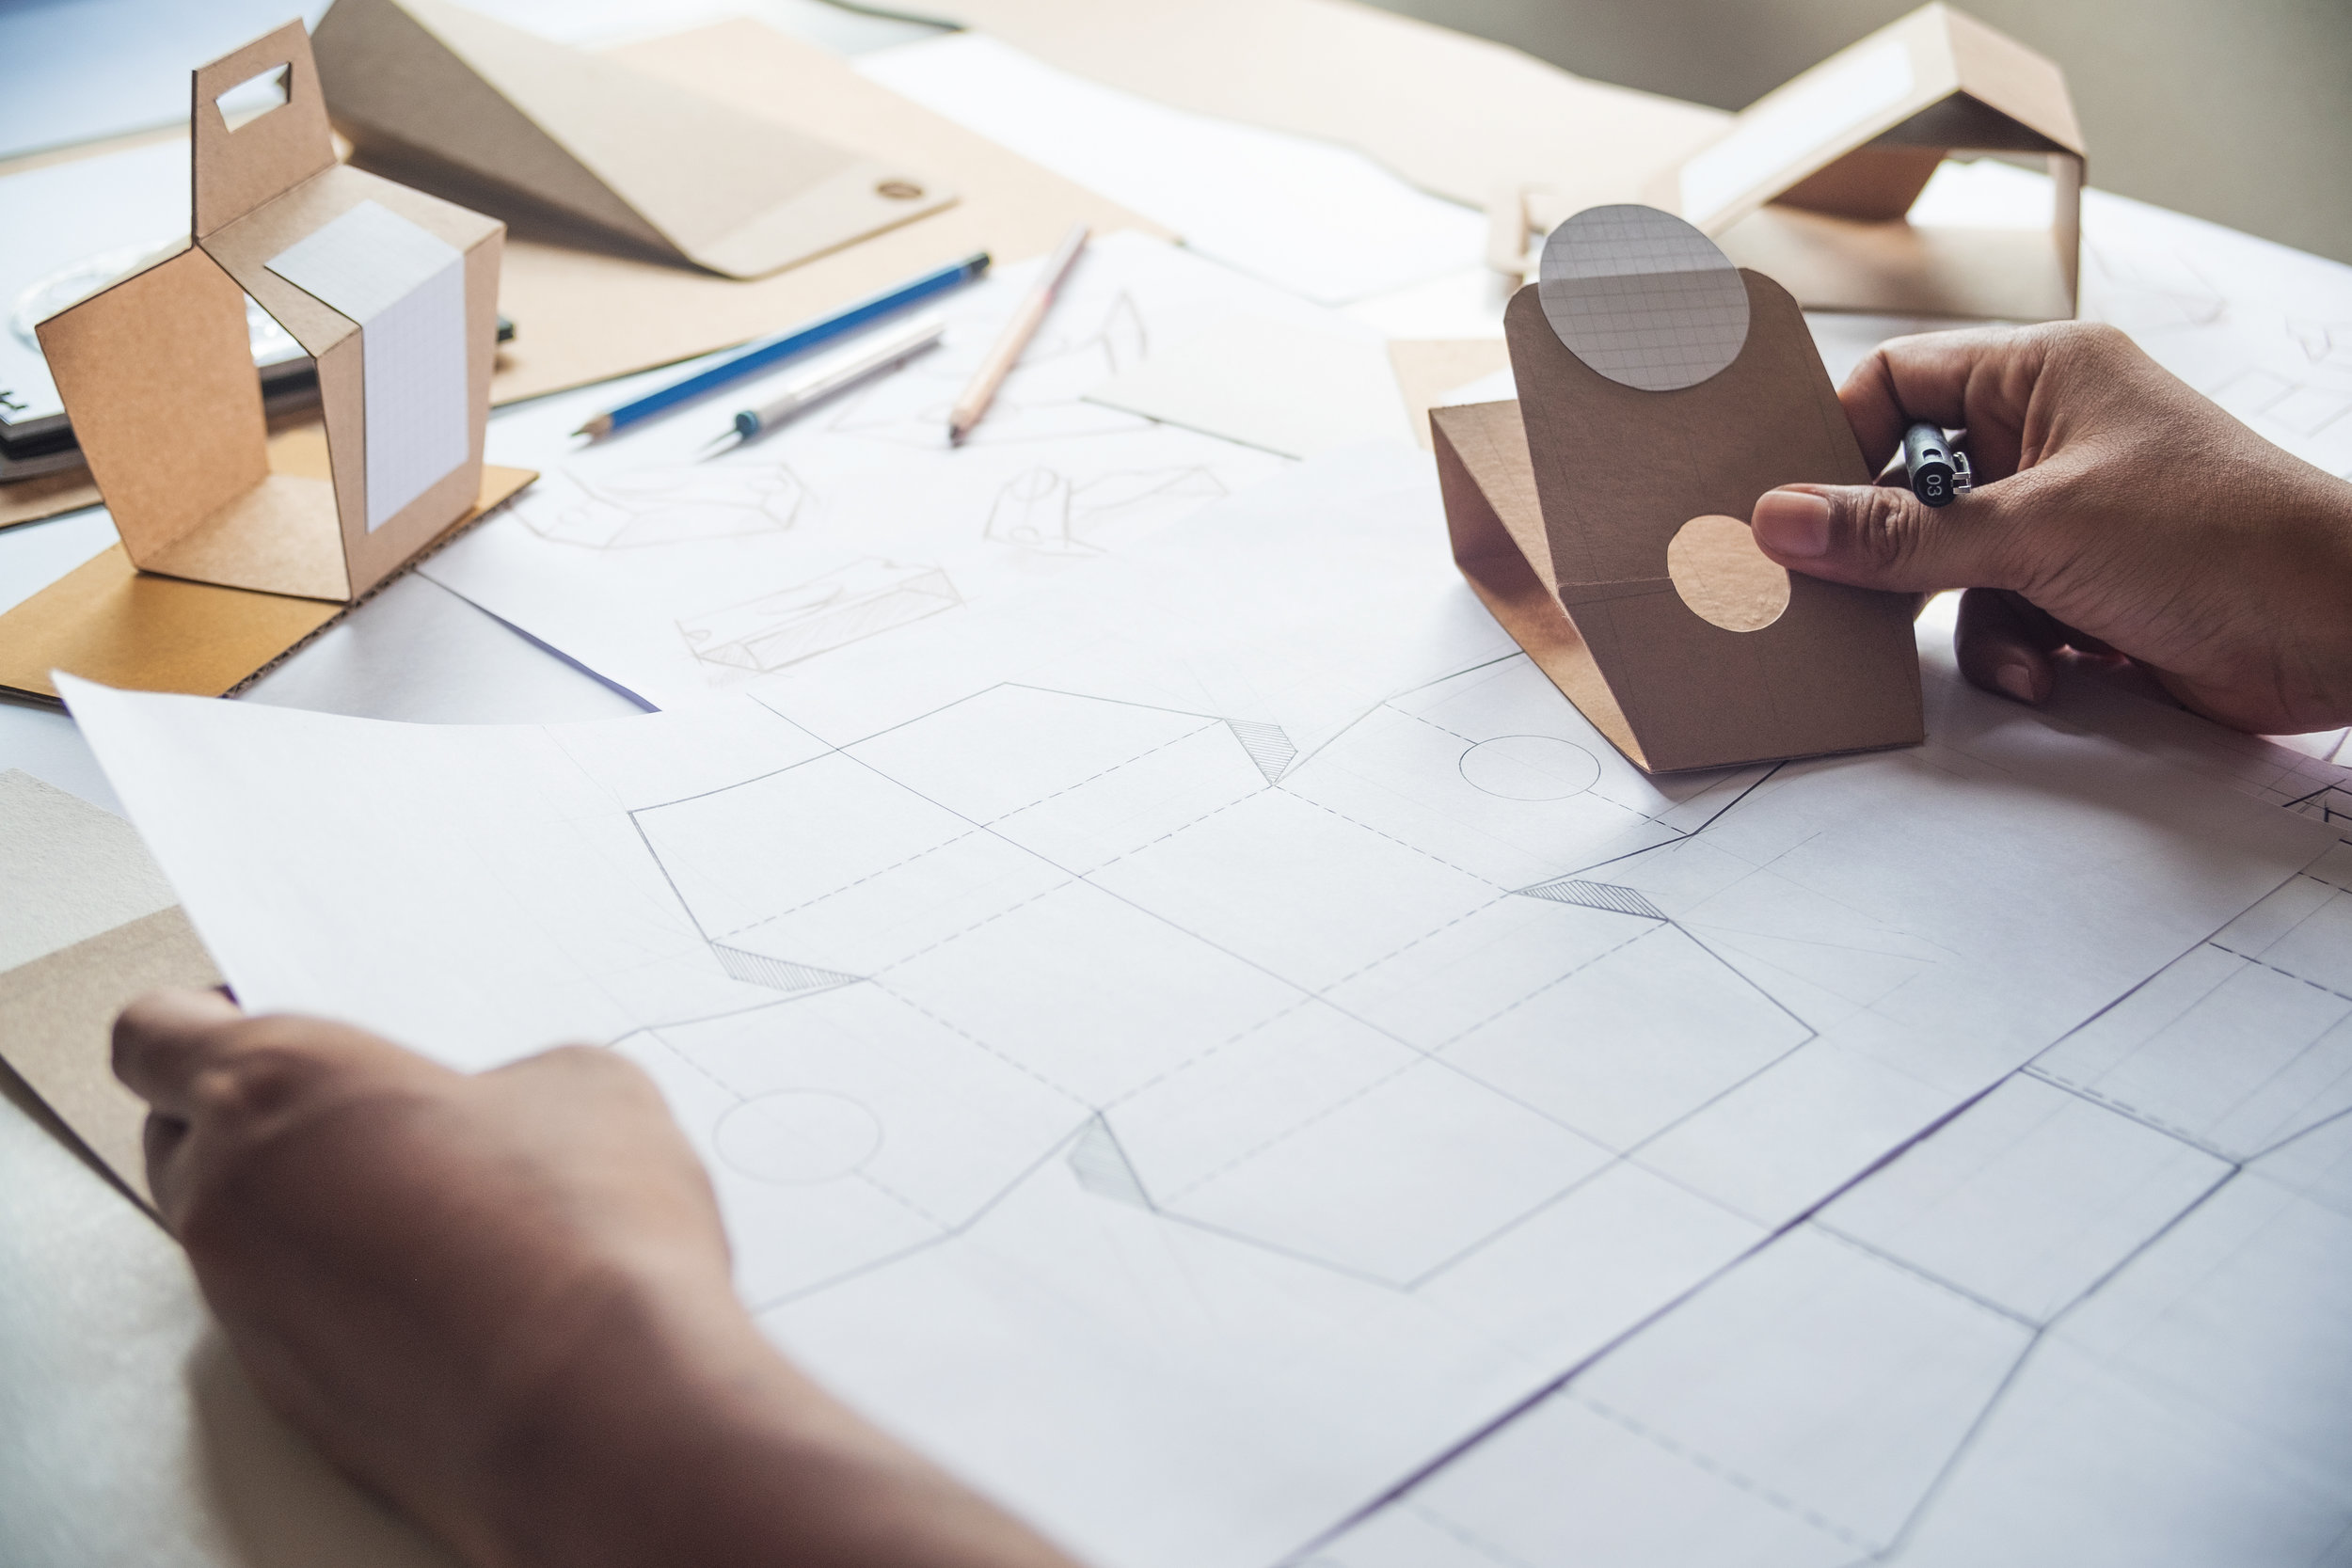 Our in-house team of graphic designers take your product to the next level by crafting authentic design solutions that will help to improve your product's visibility, marketability, and sales performance. Whether it's branding, packaging, or any other graphical necessity, we're here to help.